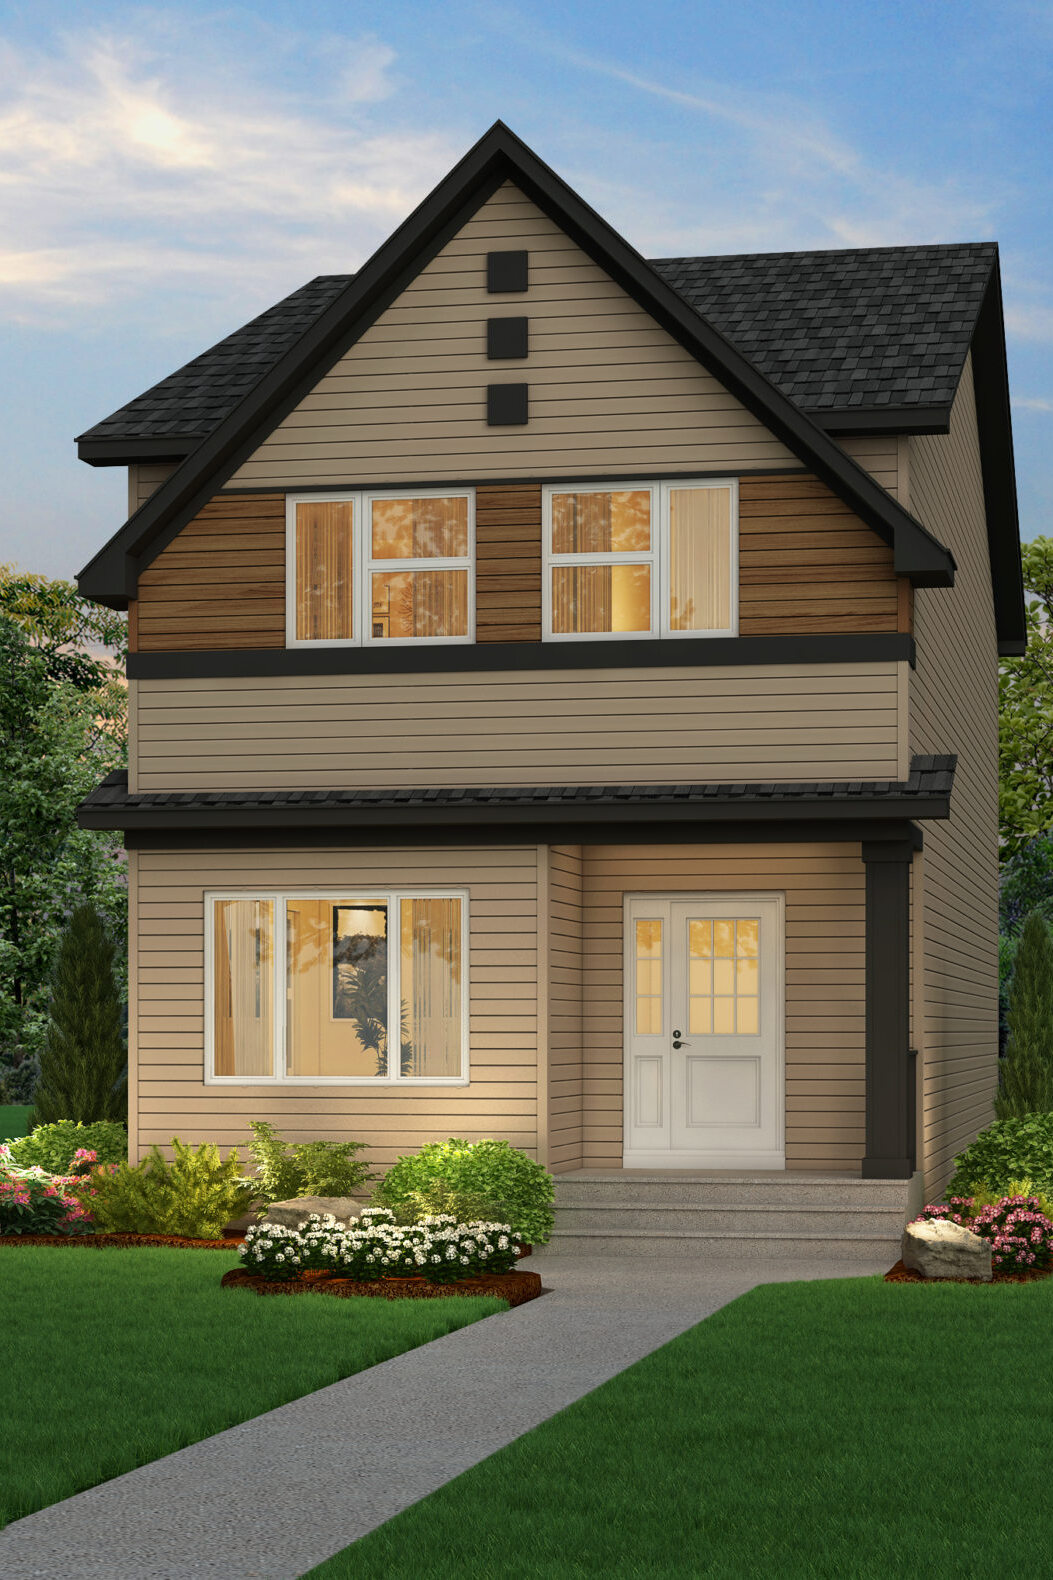 A modern prairie laned home with detached garage features white window trim and multicolored siding, including wood accents